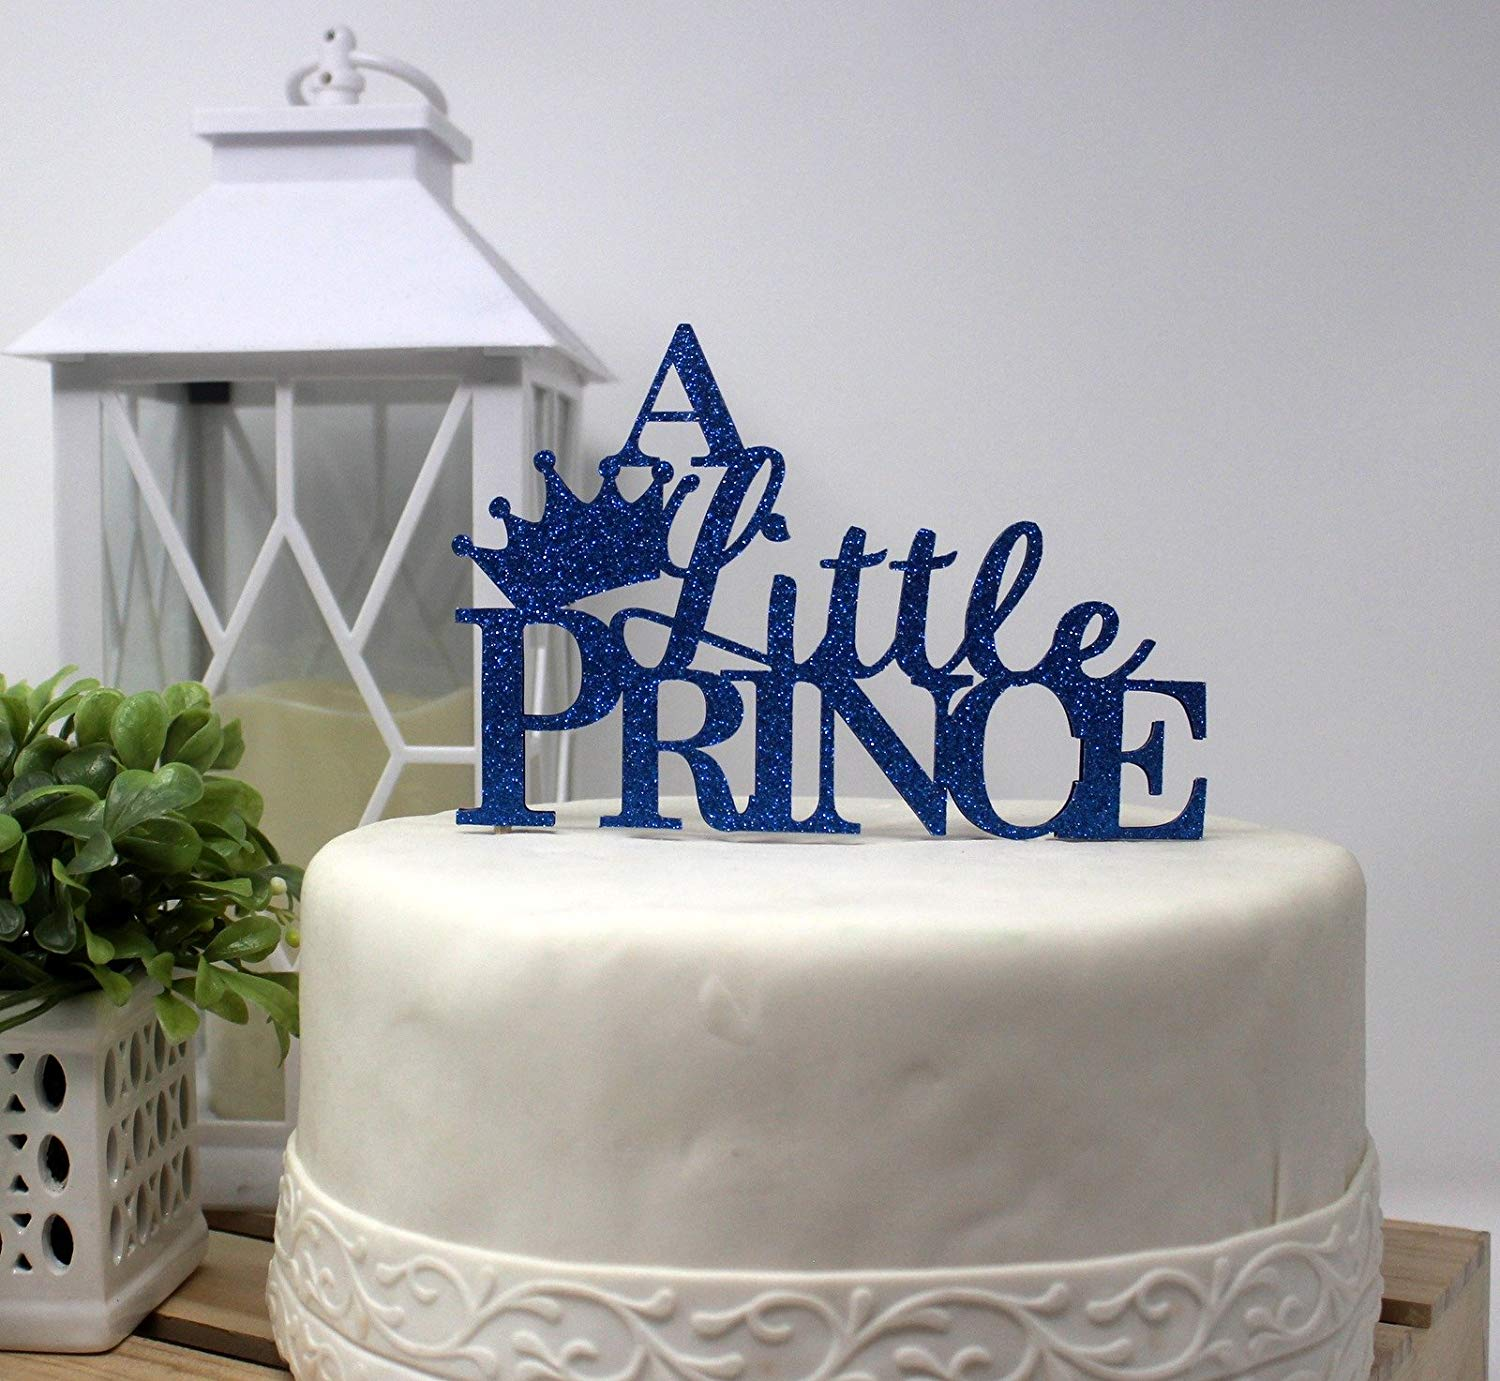 All About Details A Little Prince Cake Topper, 1pc, 1st Birthday, Welcome Baby boy, Party Decor, Glitter Topper (Blue)